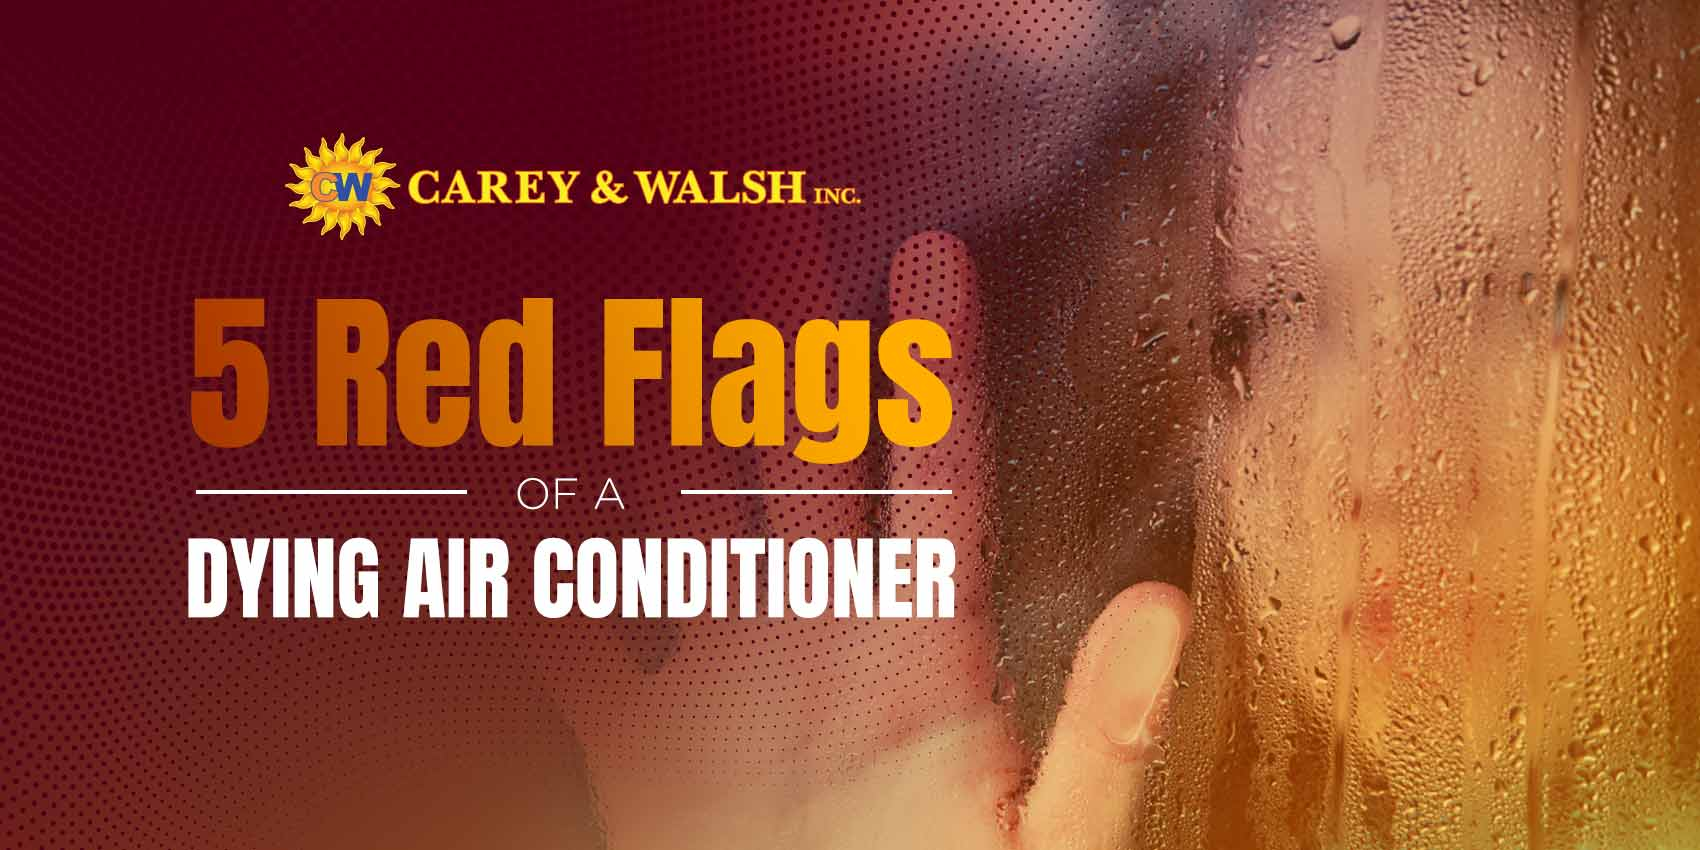 5 Red Flags of a Dying Air Conditioner